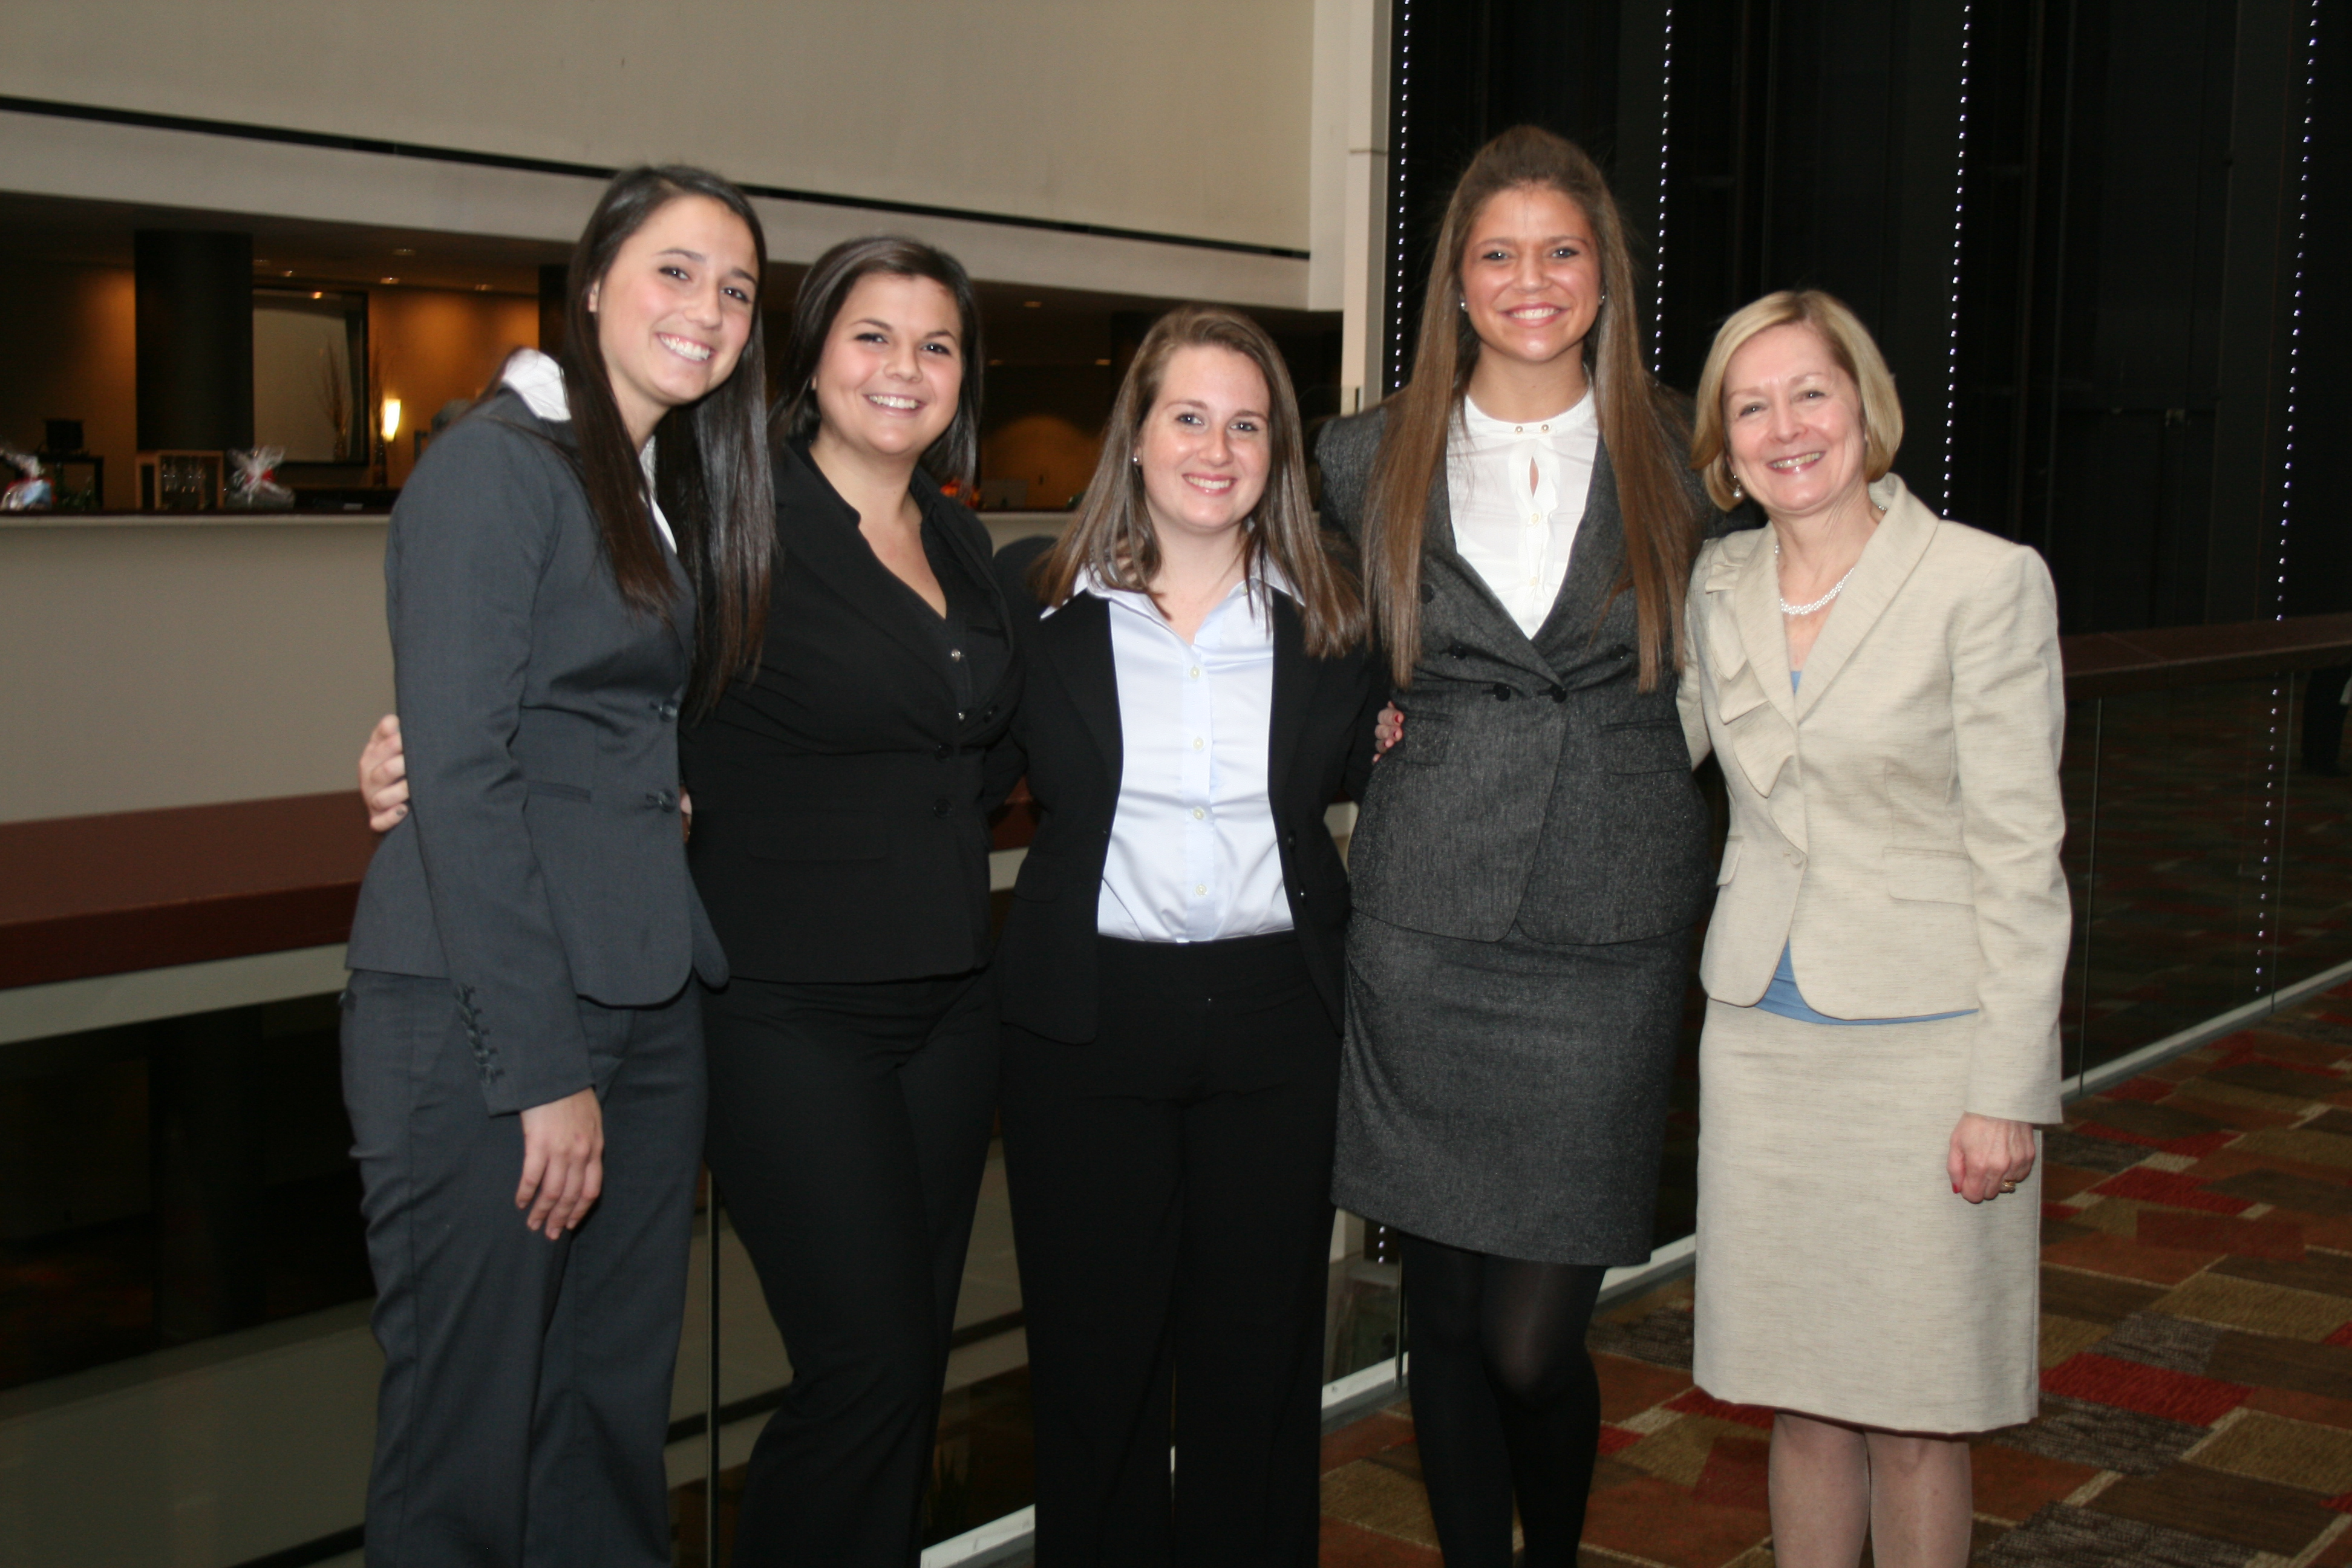 The winning team from Saint Mary's College included Allison Courtney, Maggie DePaola, Kathryn Gutrich and Chelsea Pacconi. Mary Ann Merryman was the faculty advisor.